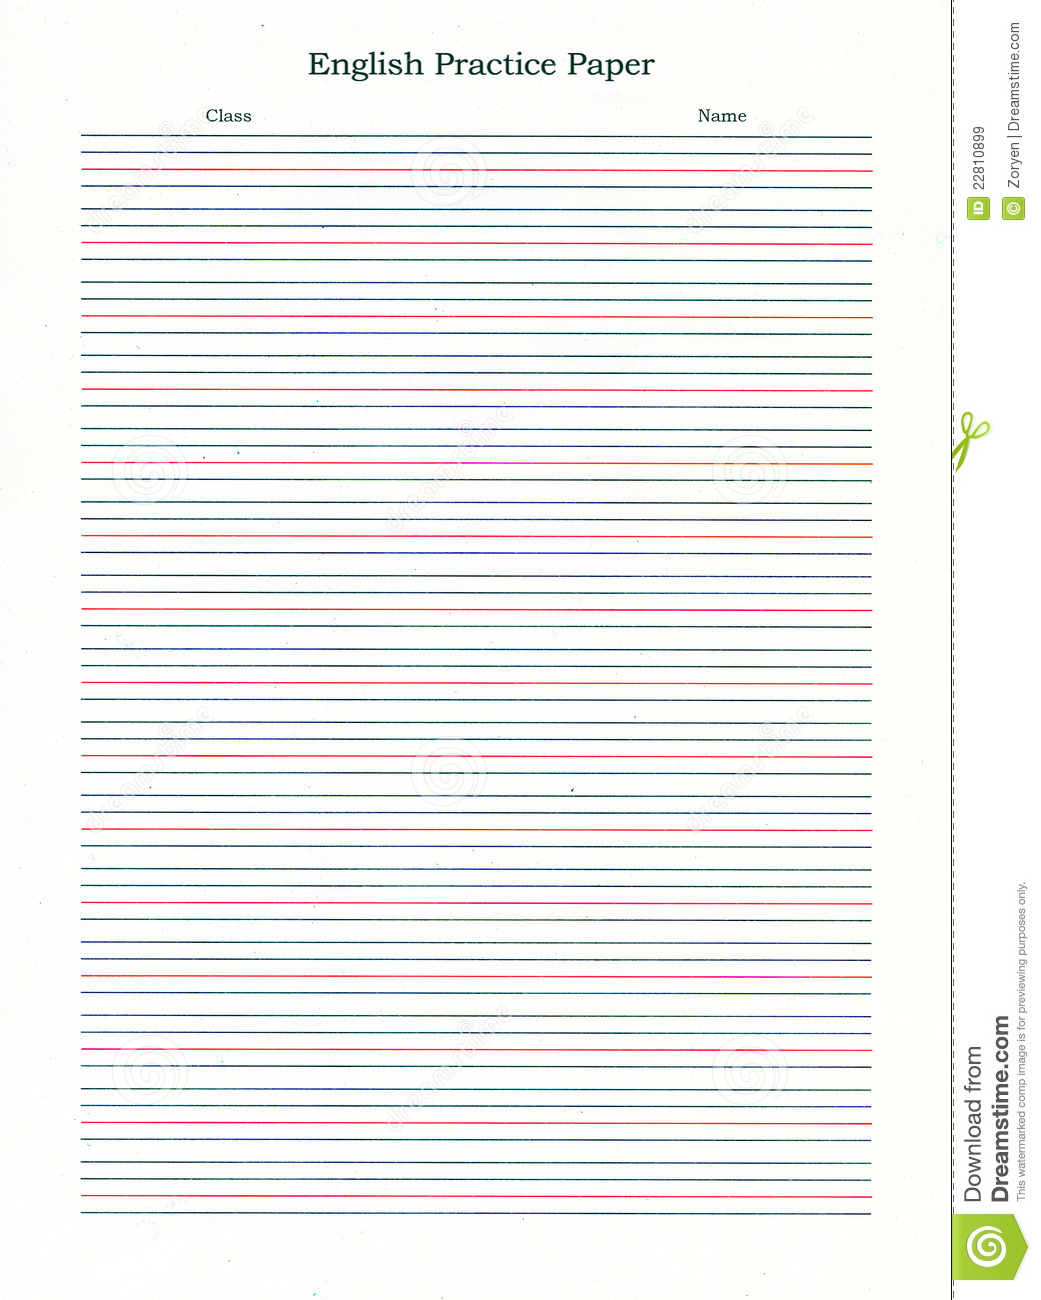 Ruled Writing Paper Royalty Free Stock Images